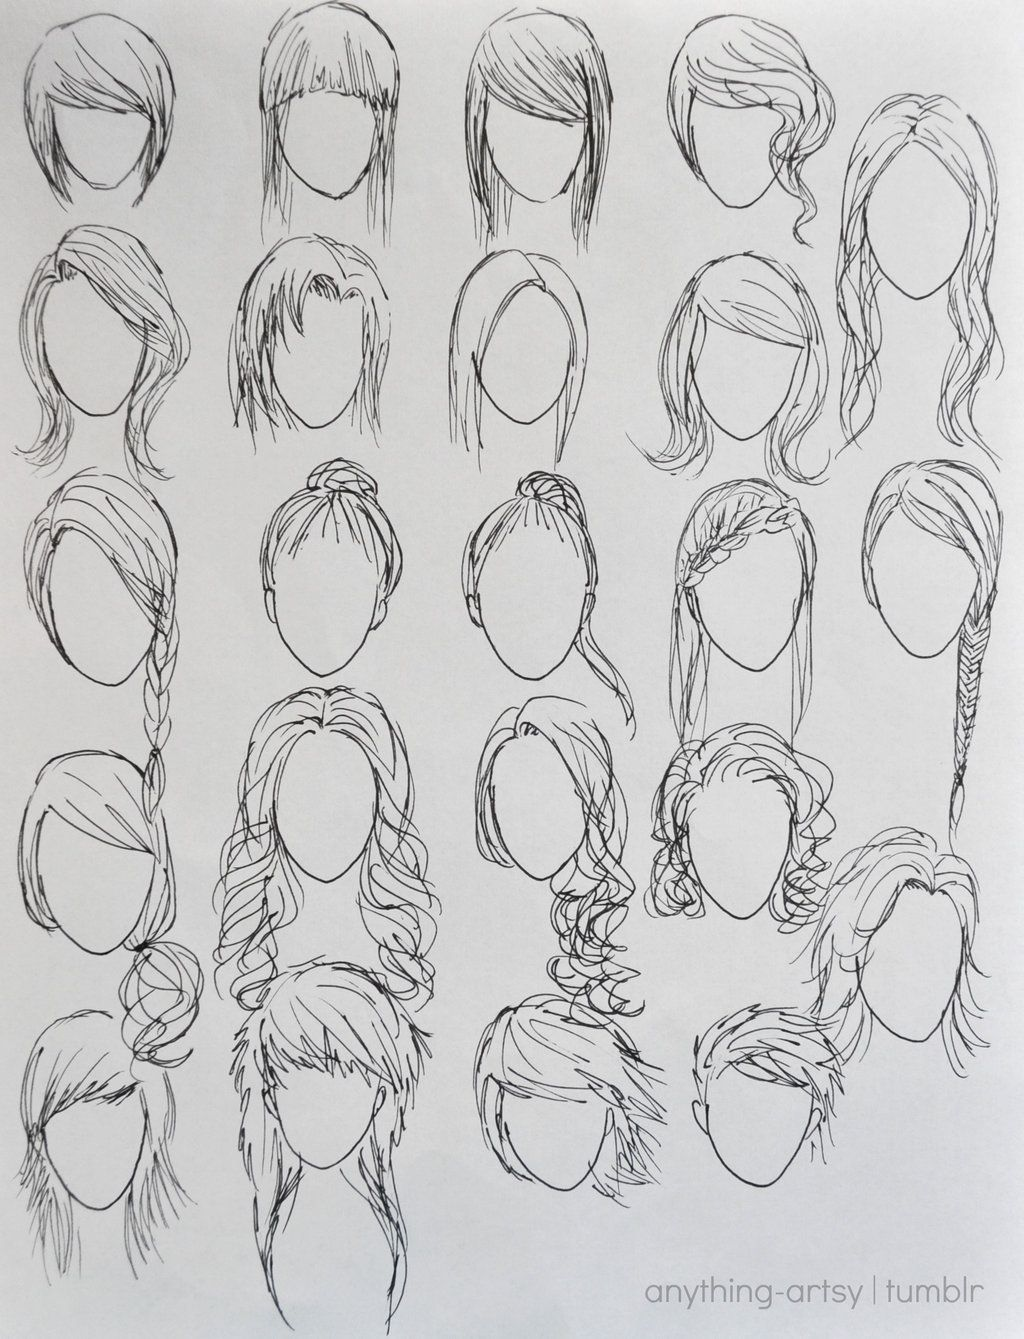 Very simple hairstyle how to draw anime characters step by step for beginners google search